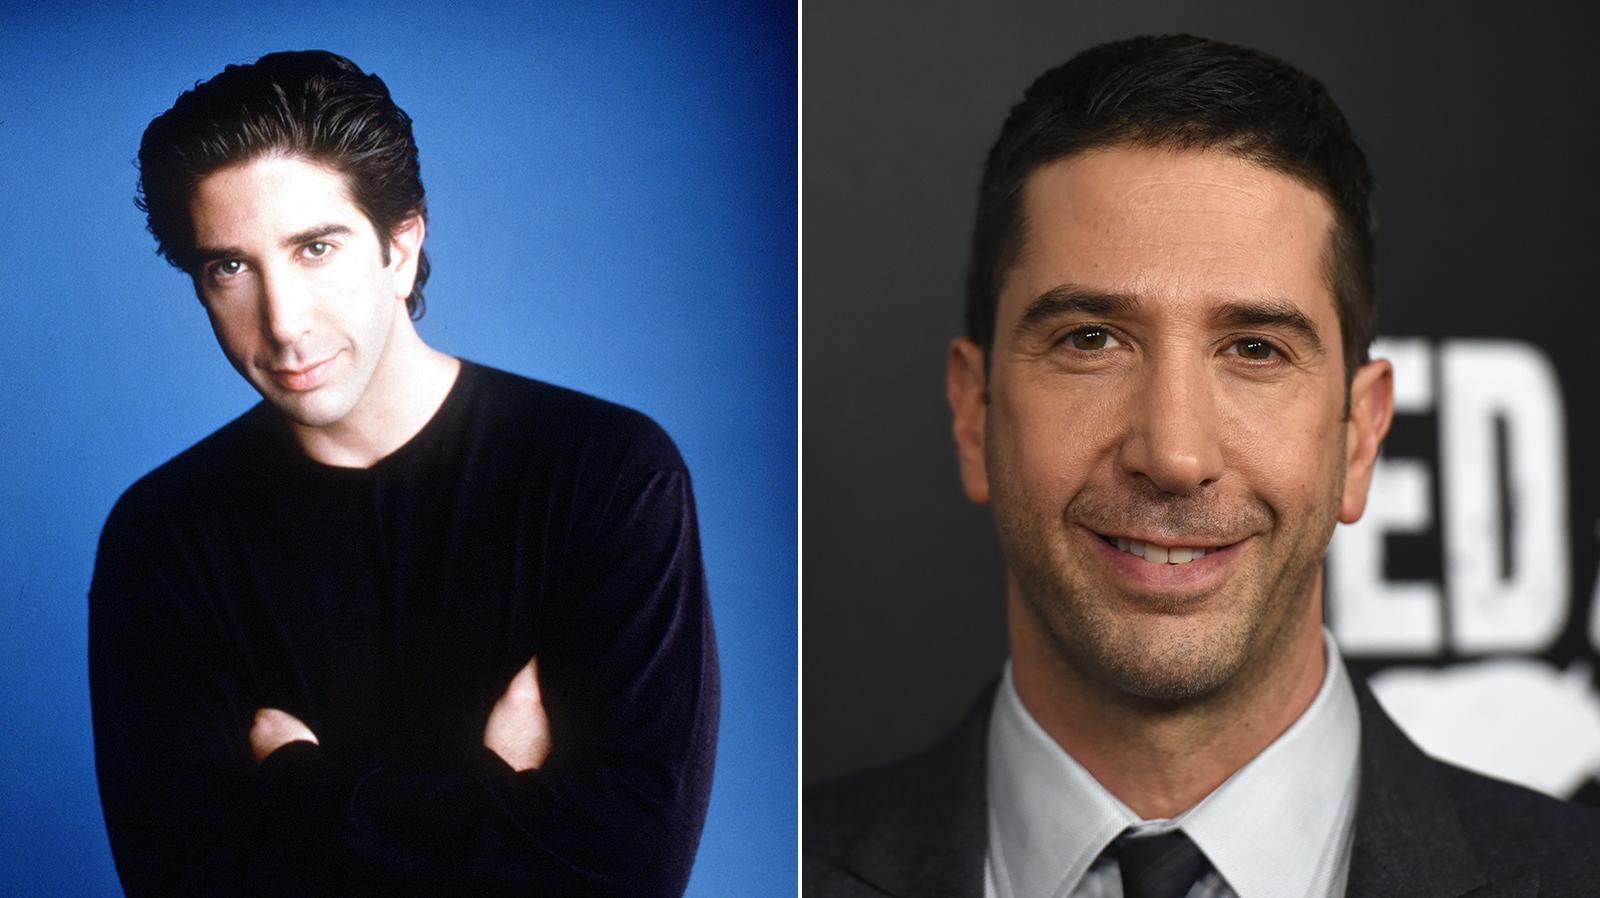 David Schwimmer (Bright/Kauffman/Crane Productions / Getty Images)